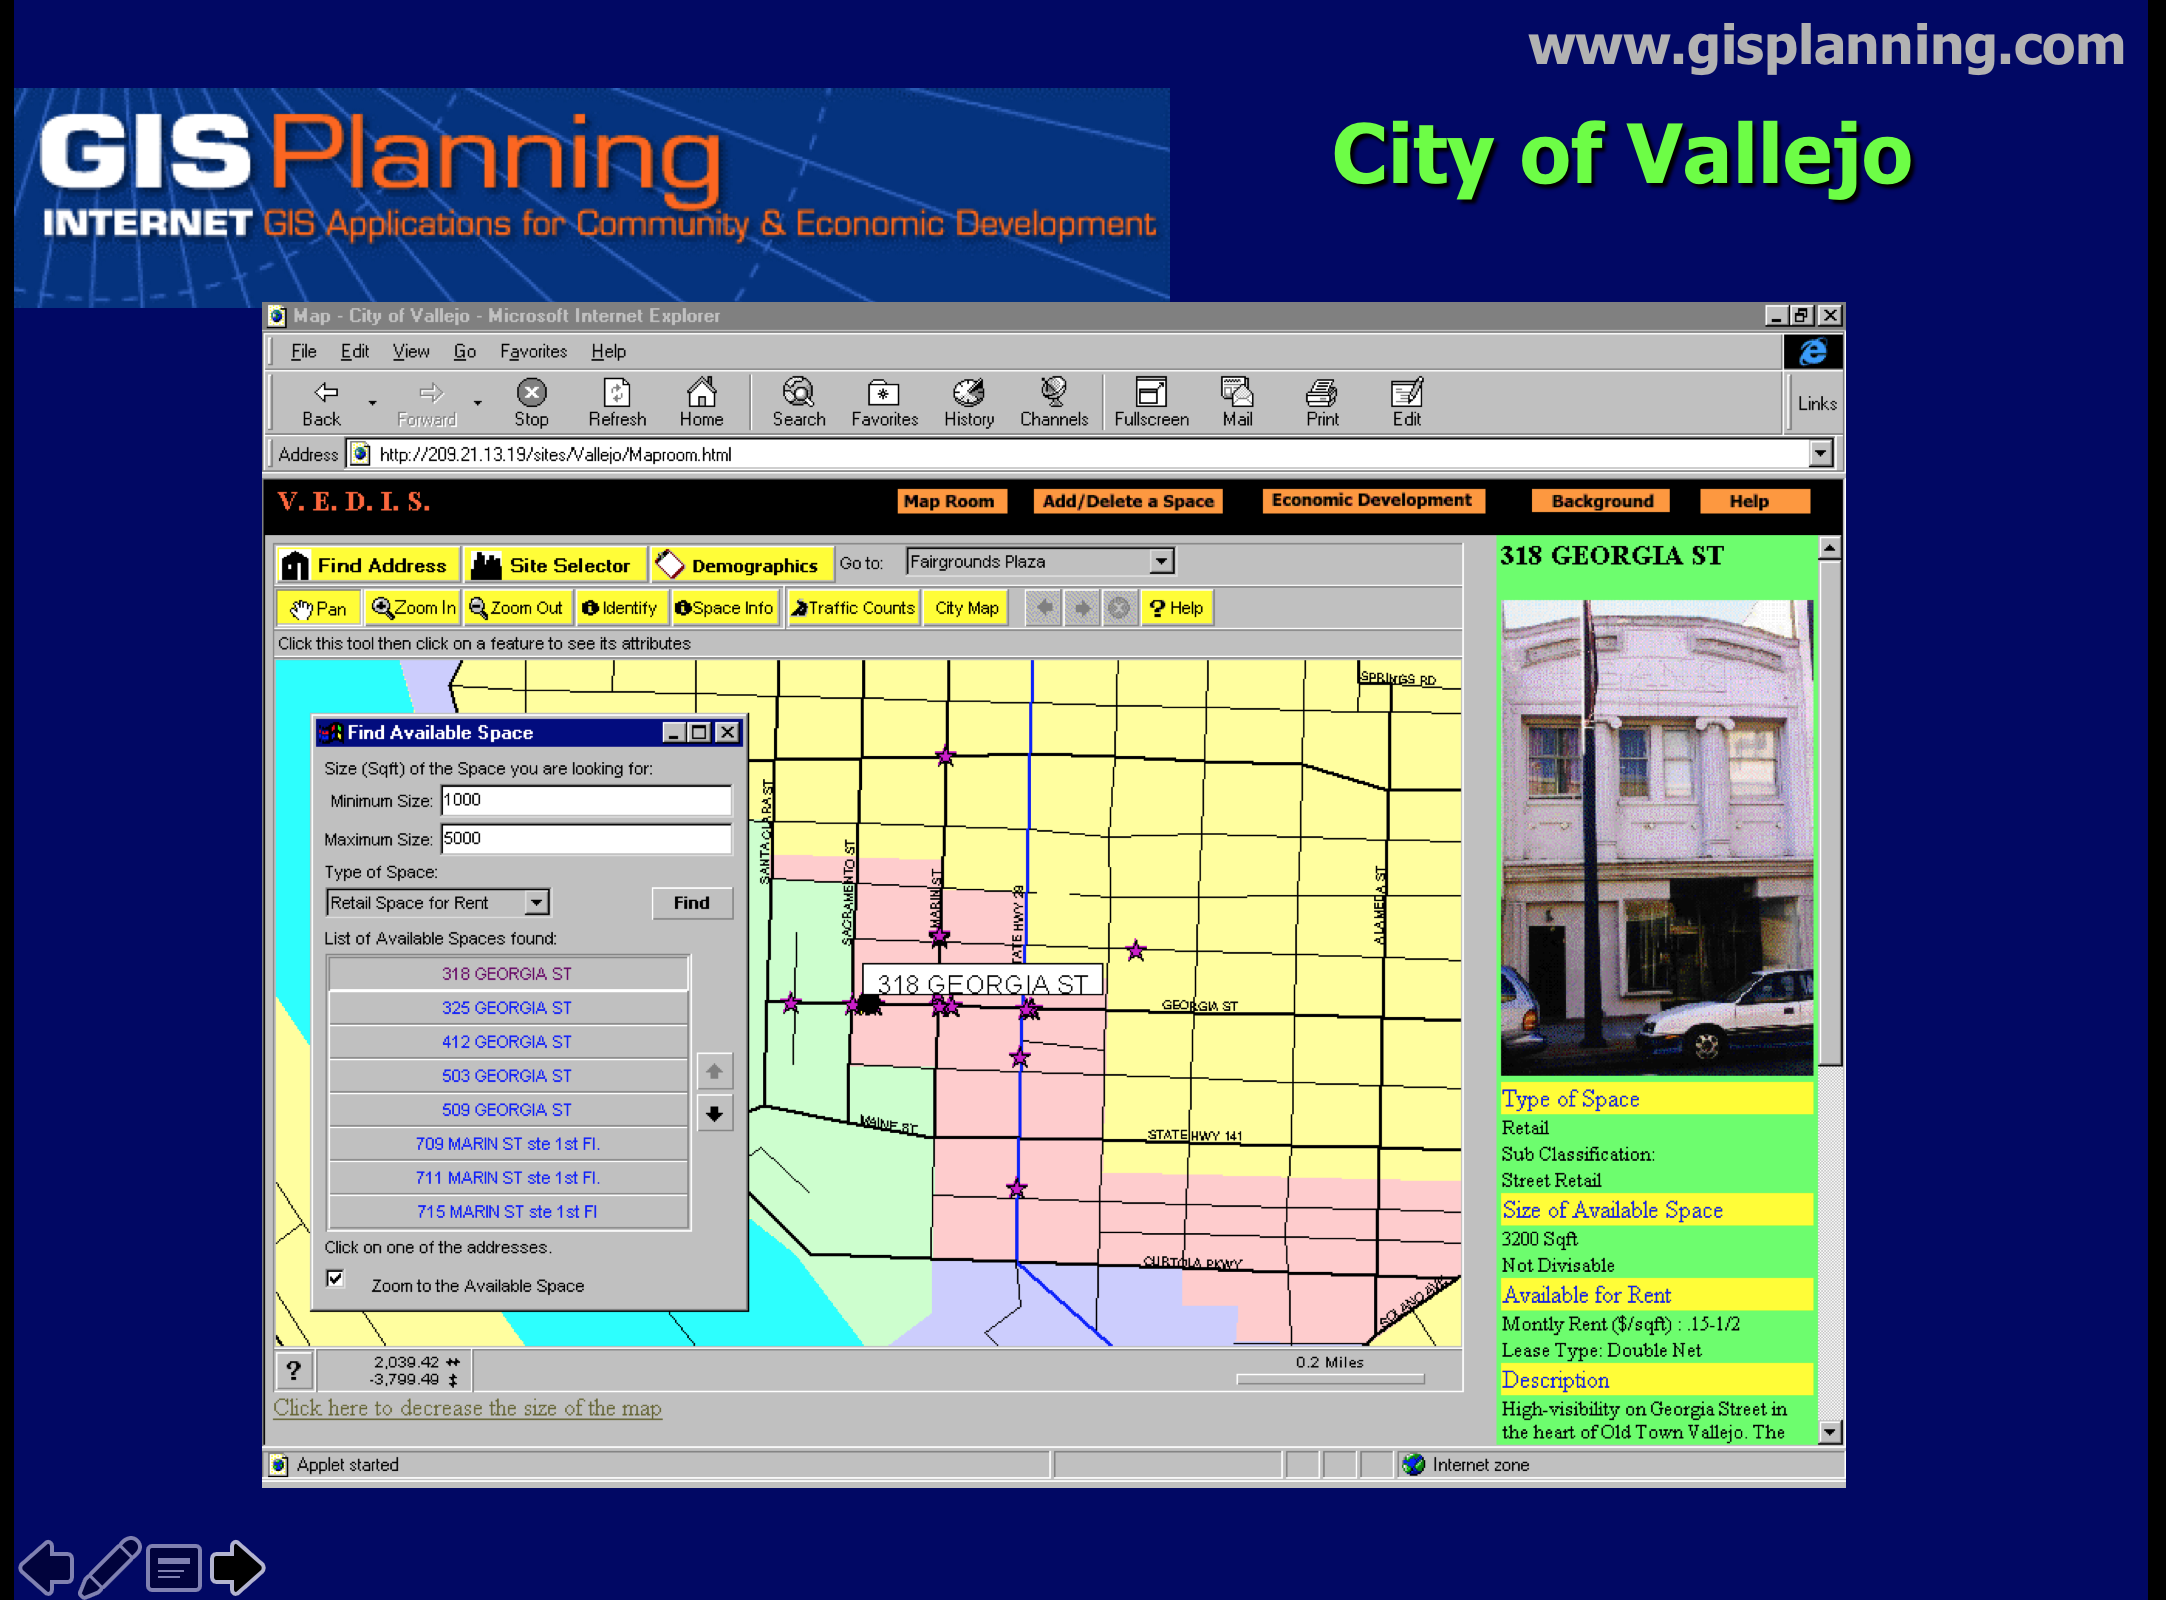 City of Vallejo 1998